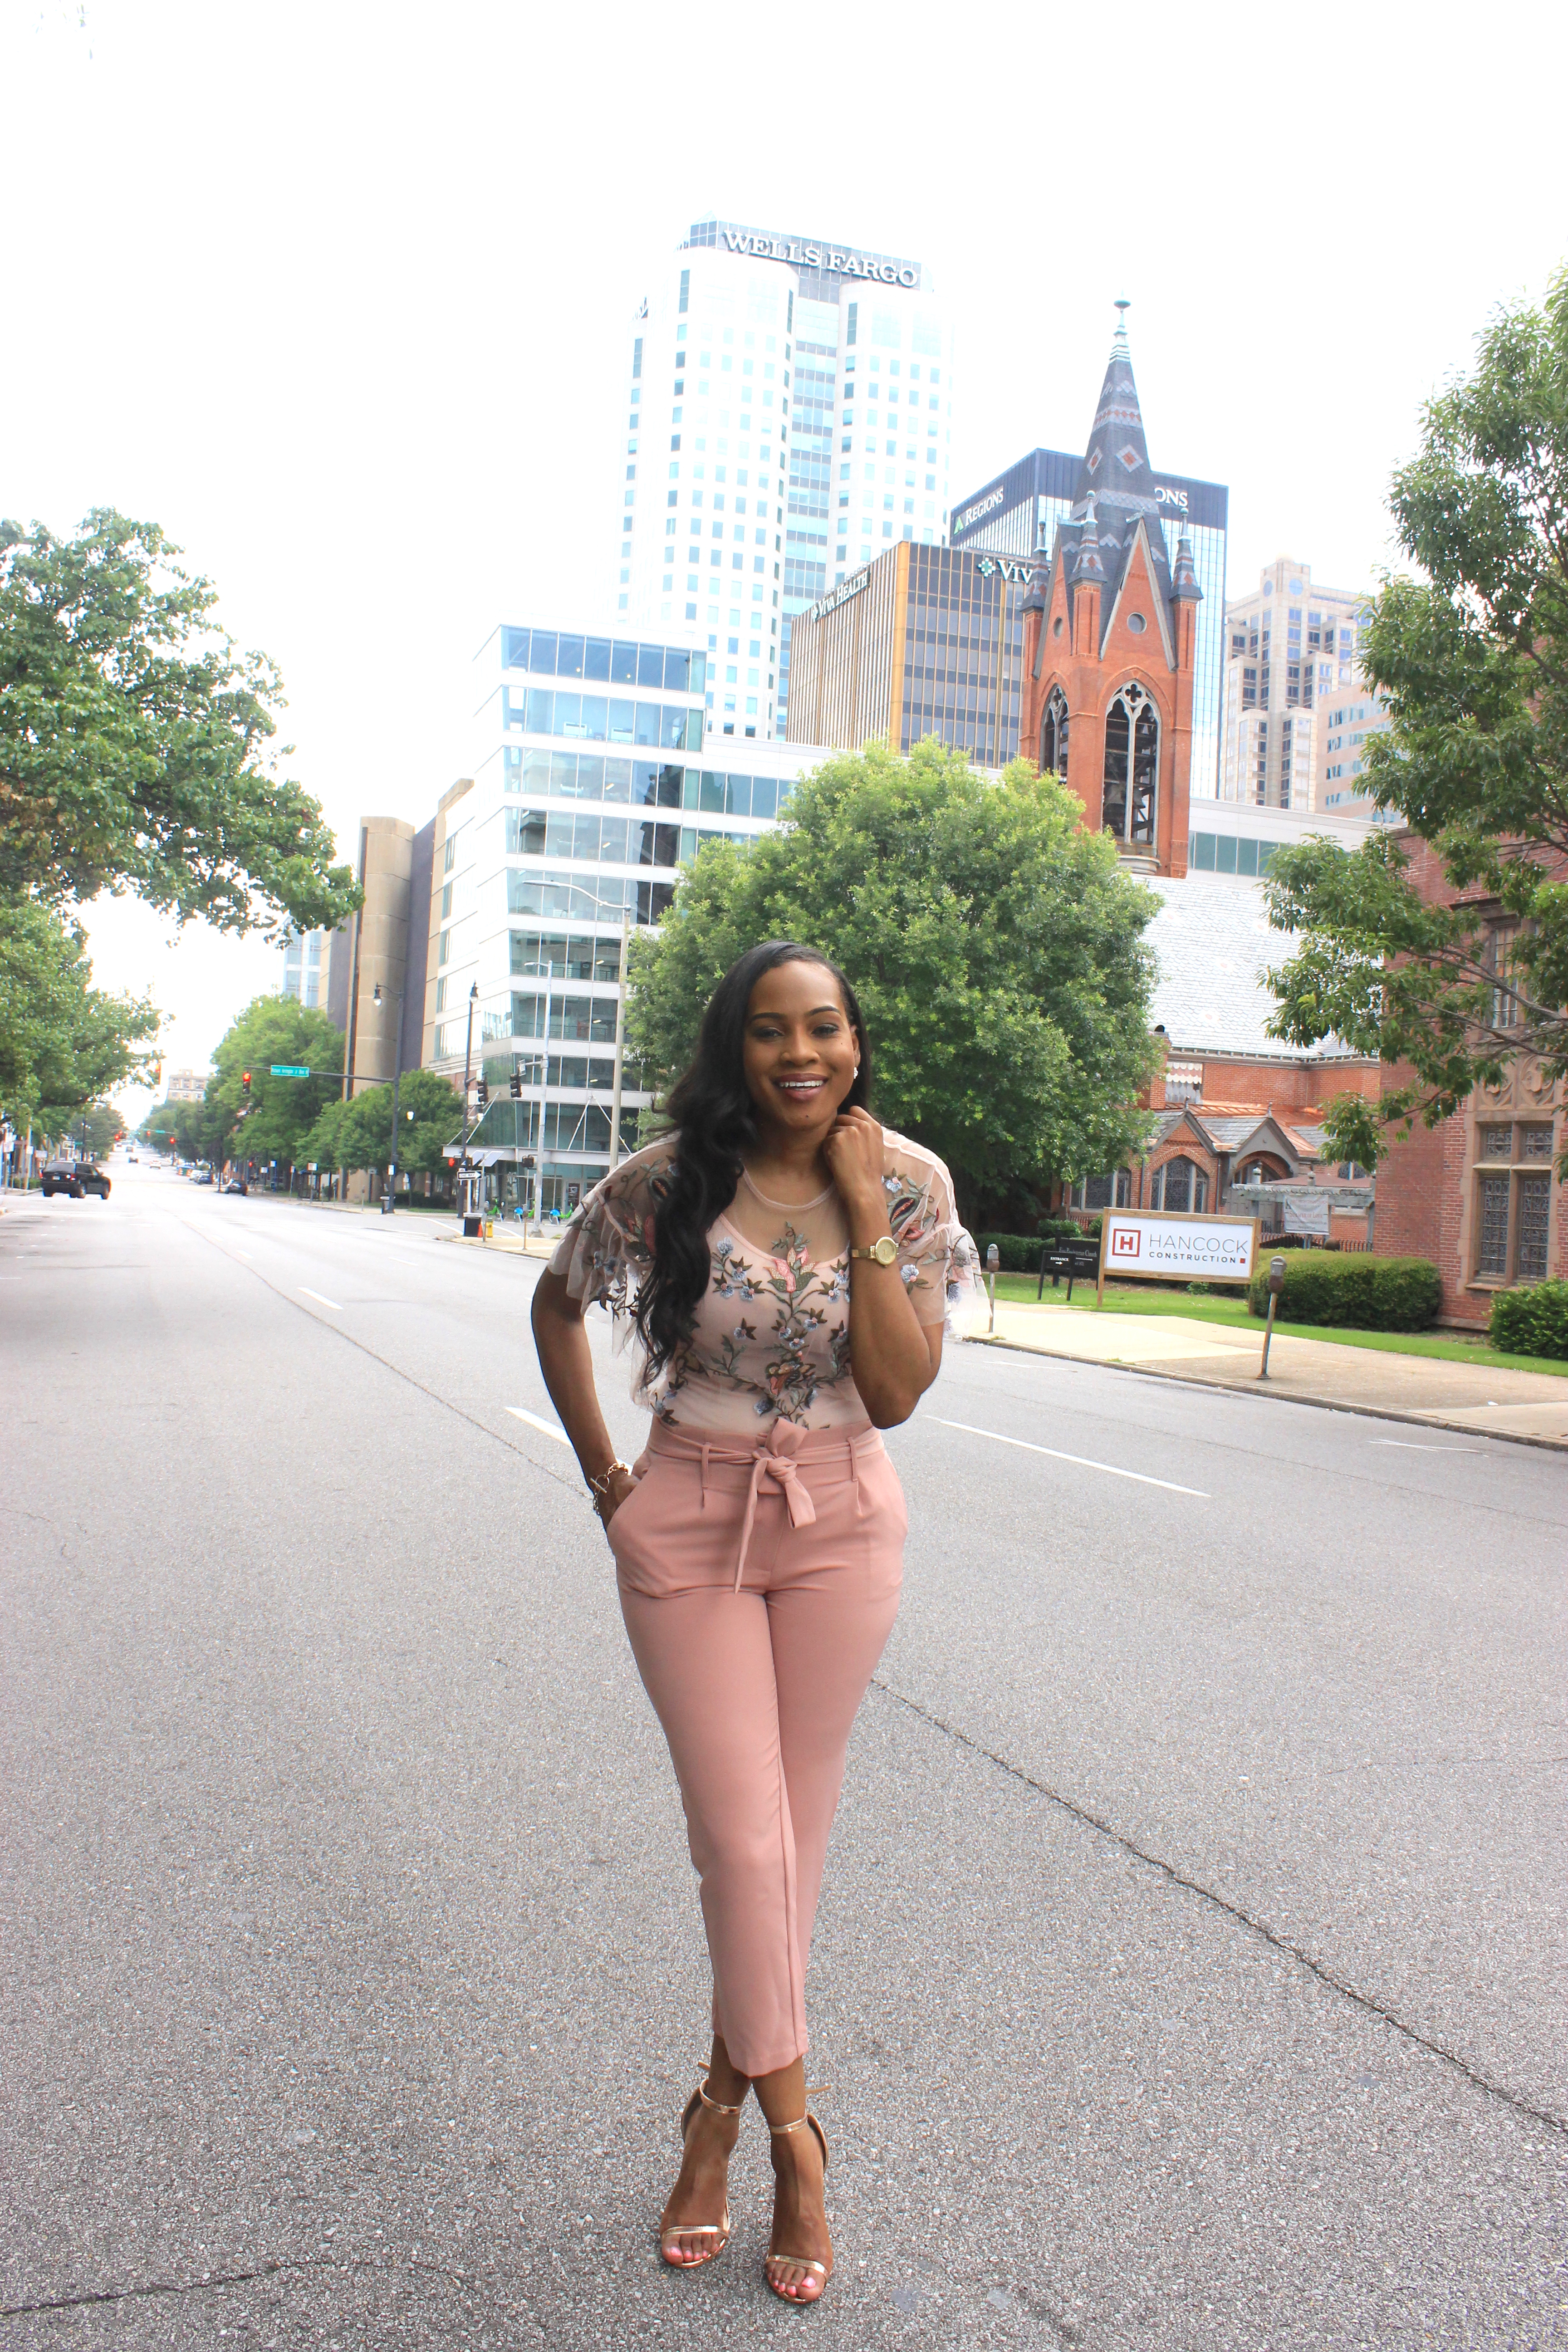 Style-files-Daila-Floral- Embroidered-Applique- Flounce-Sleeve-Sheer- Top-High-waist-pink-tie-front-pants-Birmingham-top-blogger-Alabama-top-blogger-oohlalablog-8